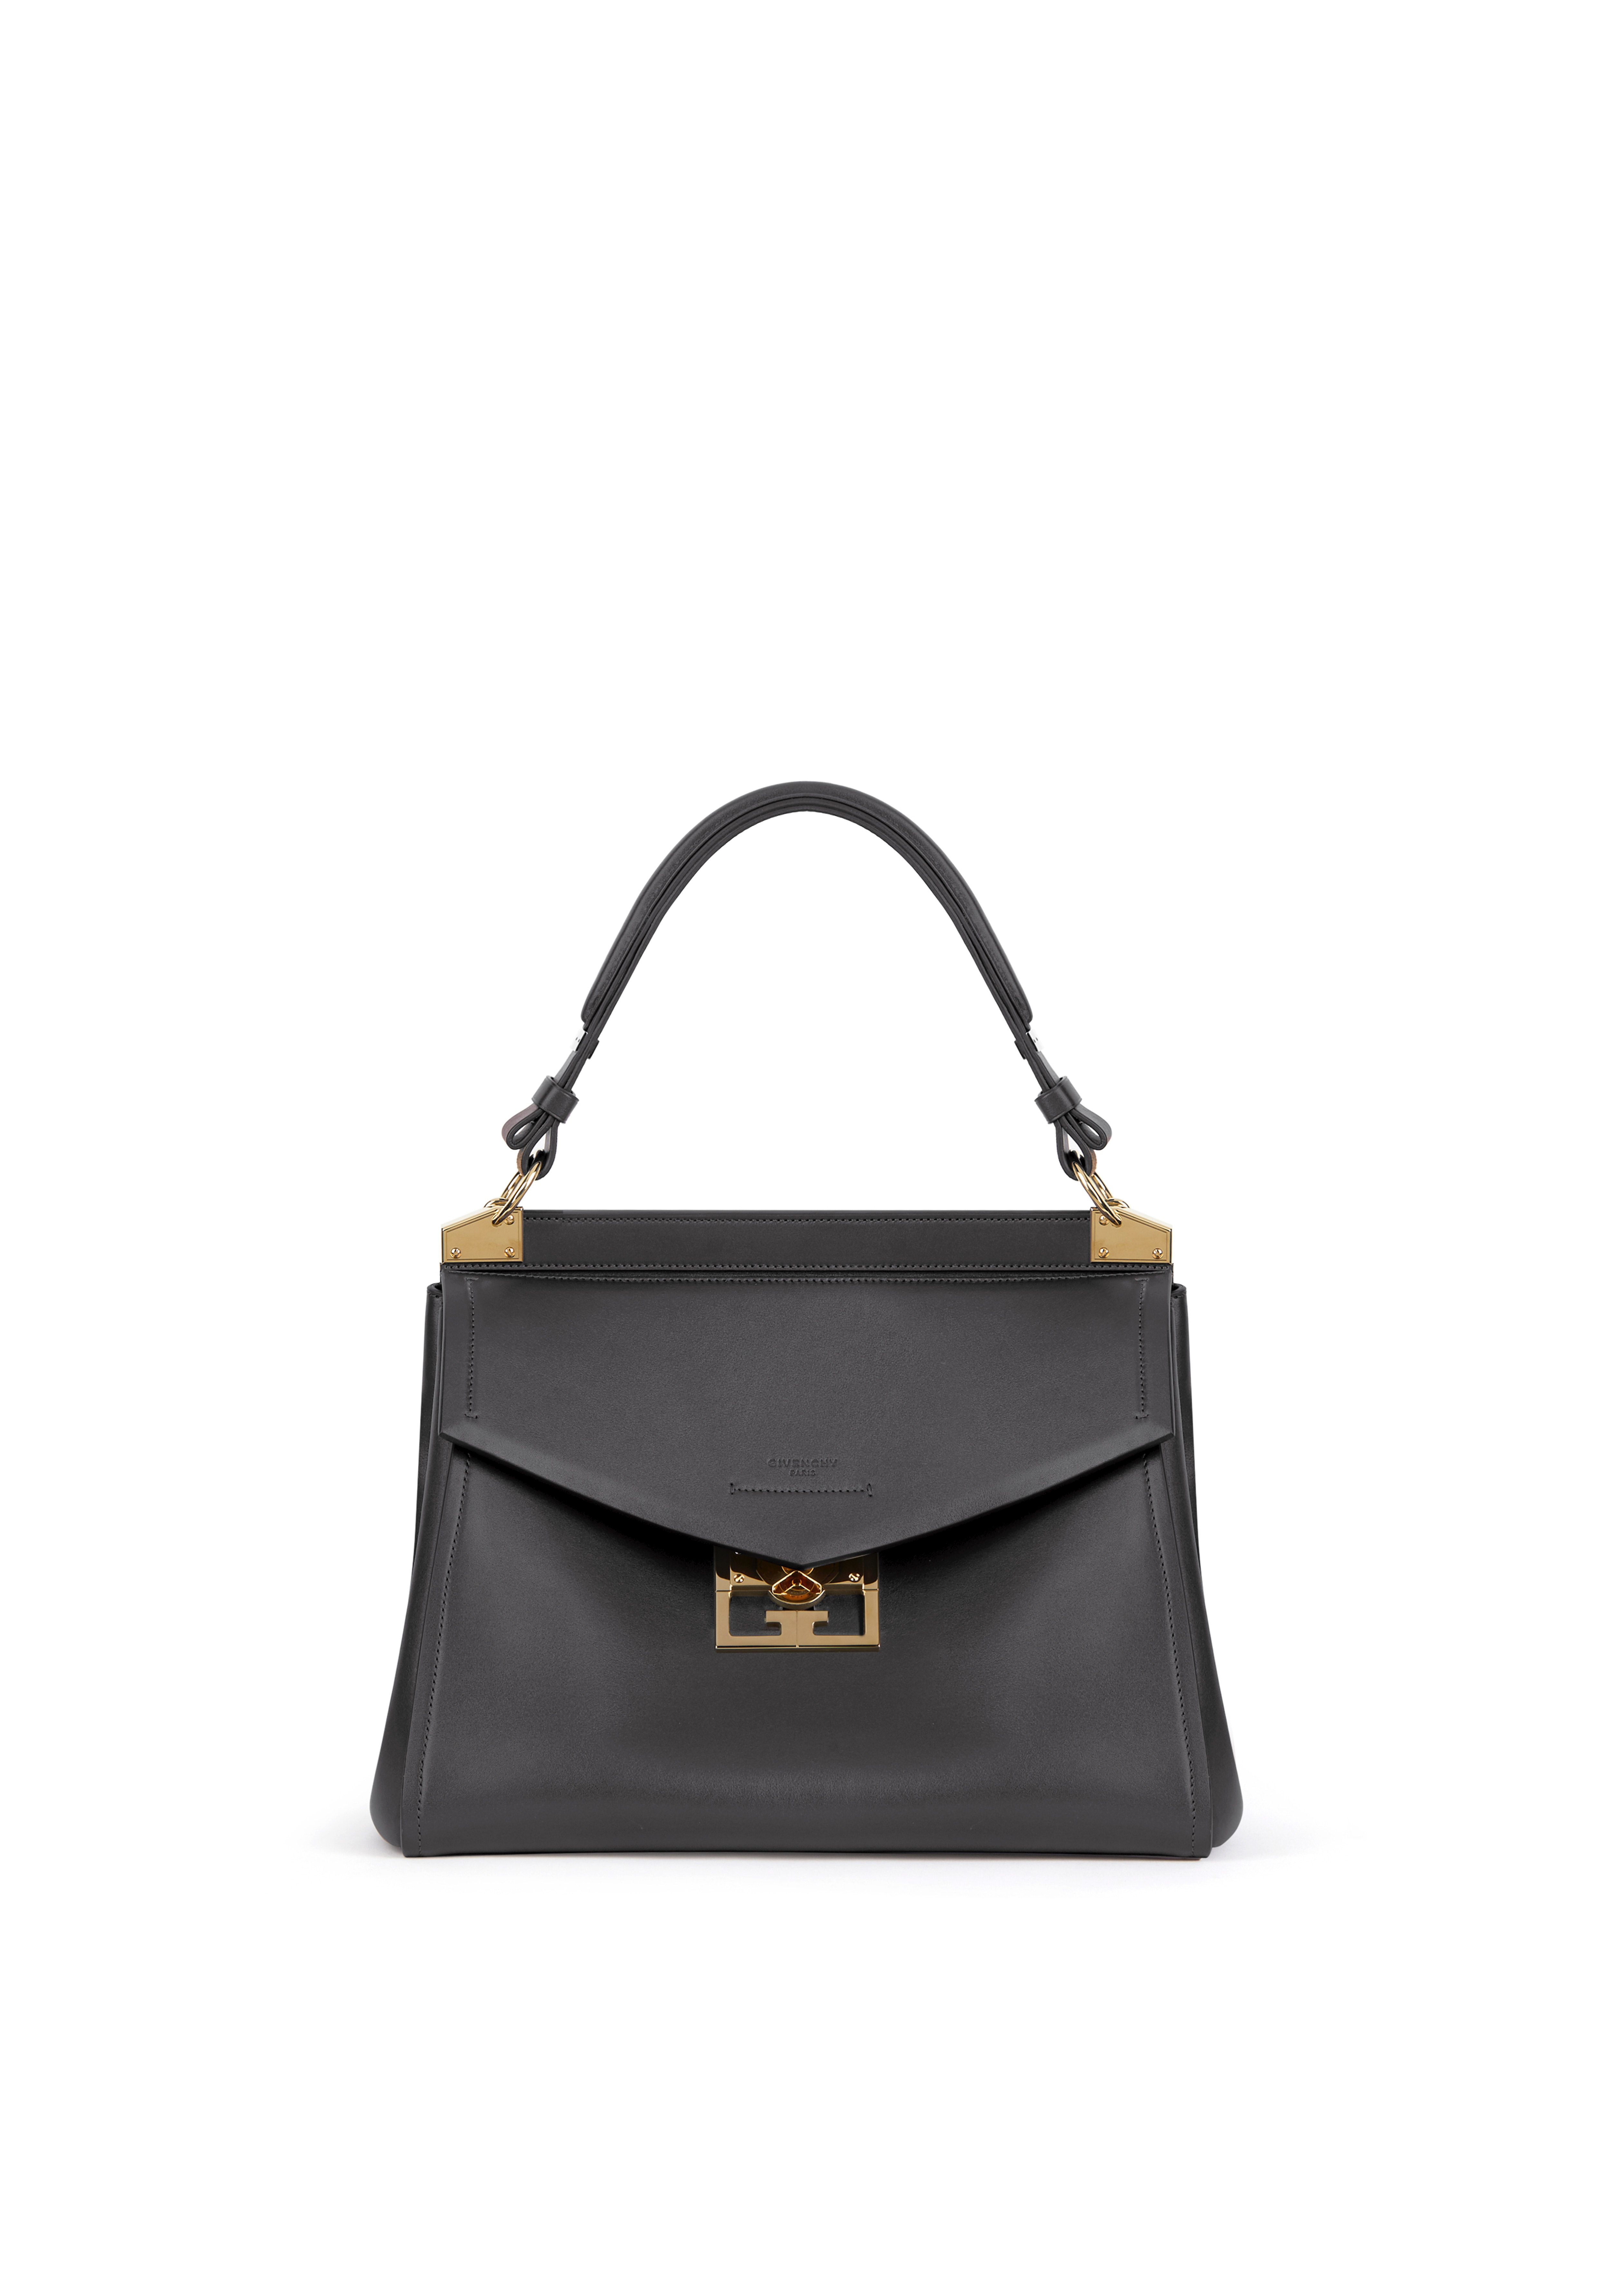 Givenchy S New Mystic Handbag Was Inspired By Haute Couture